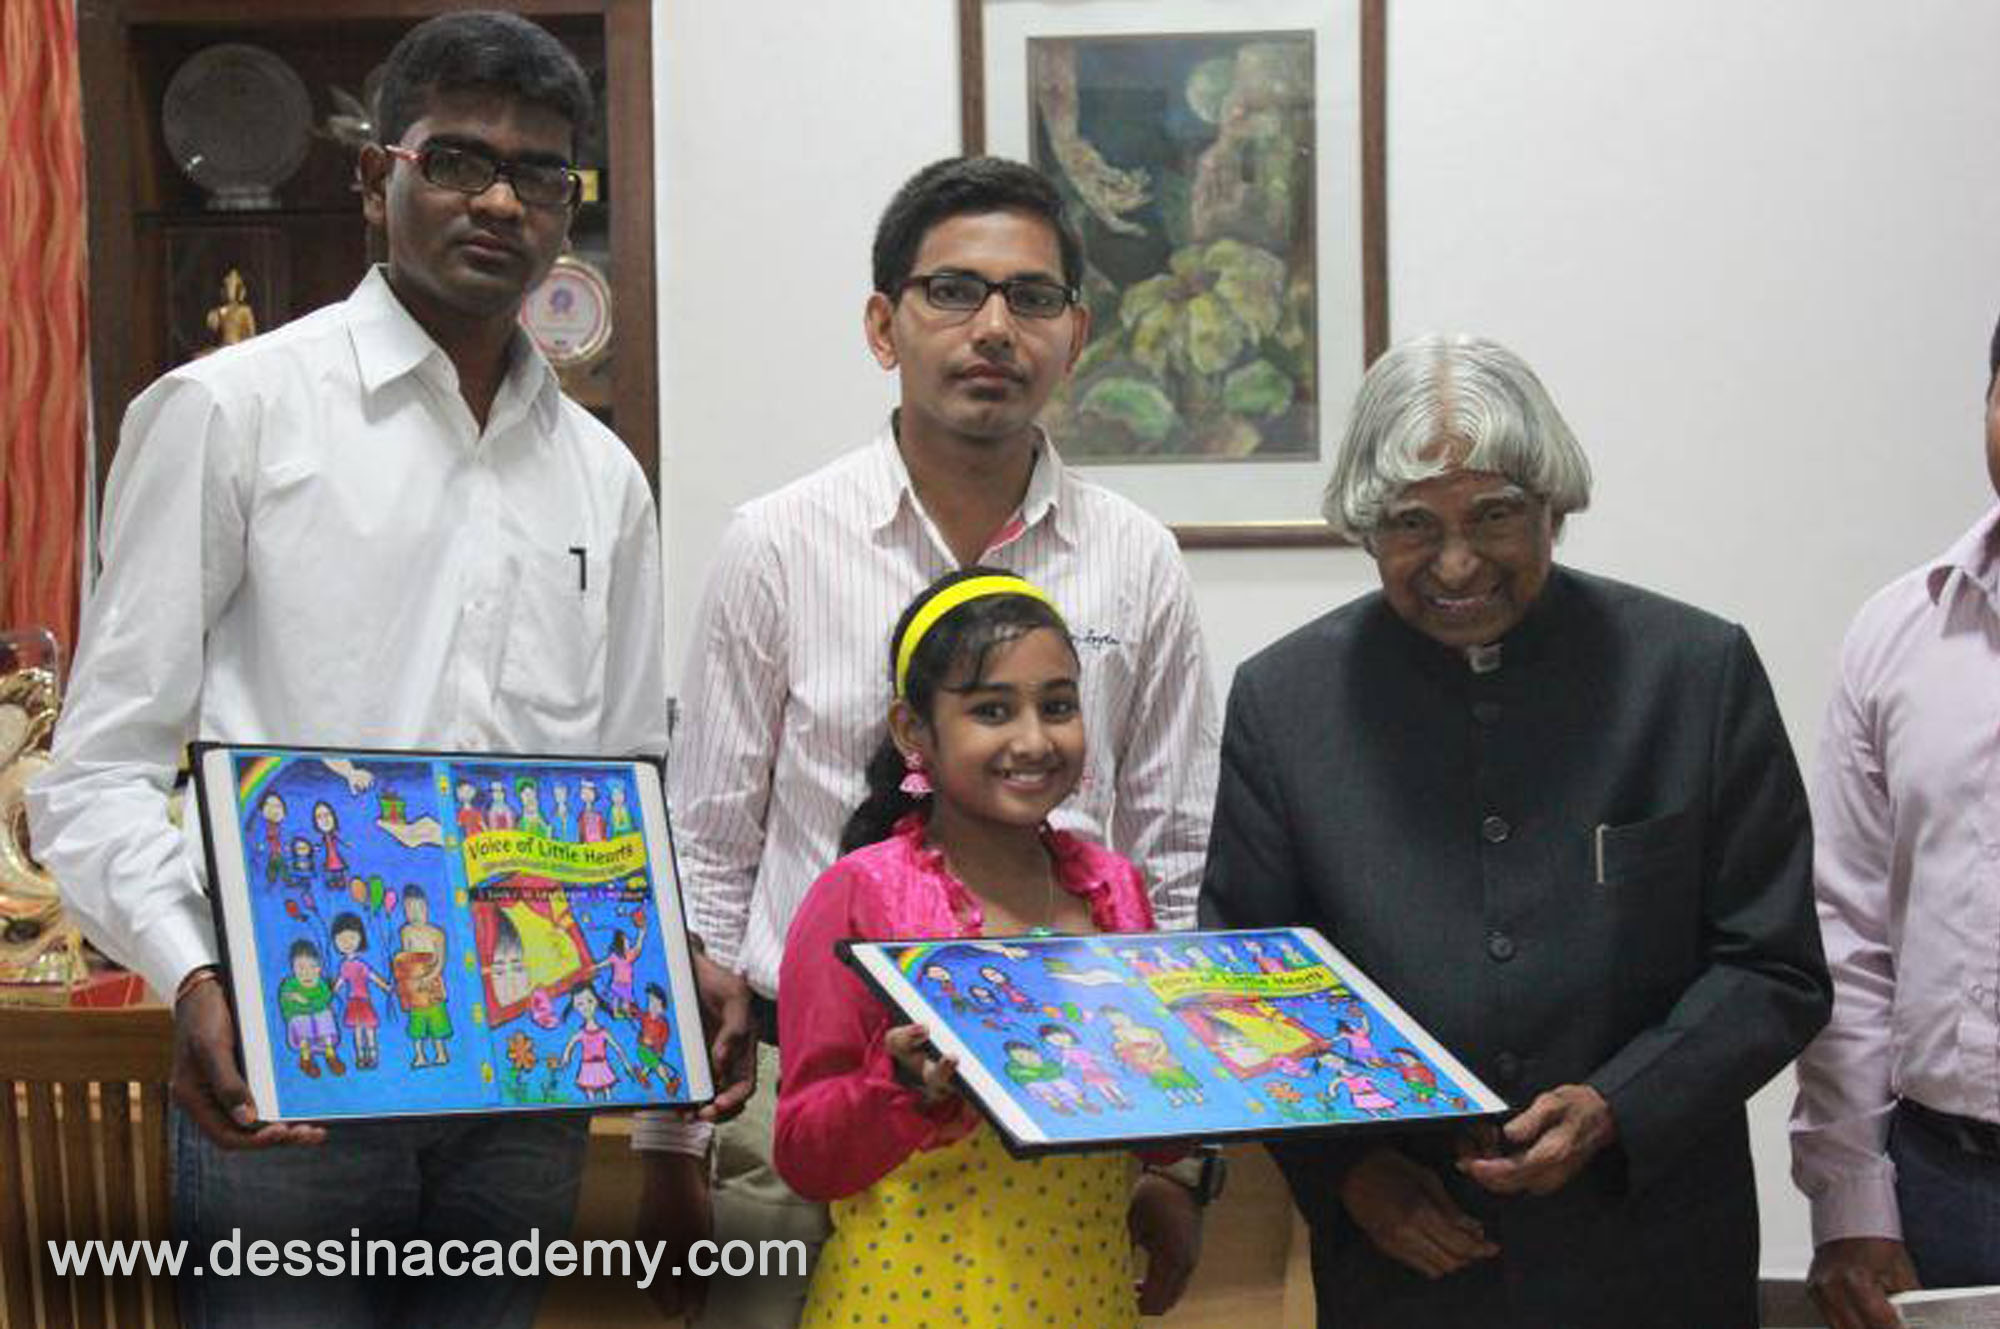 Dessin School of Arts Students Acheivement 1, Pearl Kids International, canvas painting classes in Anna Nagar P Block